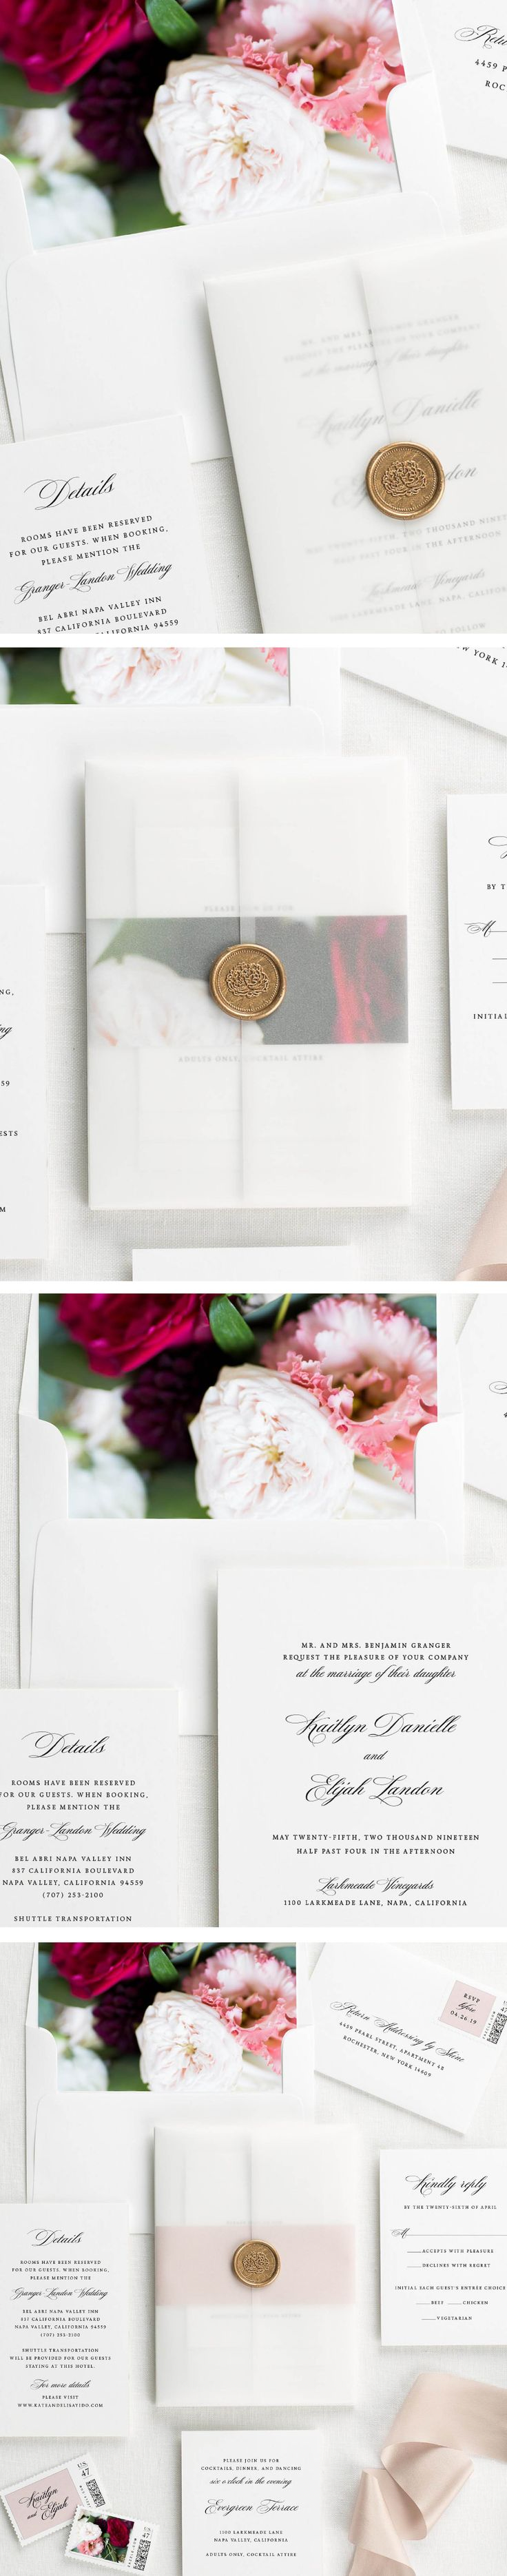 60 best Envelopes, Wax Seal and Ribbons images on Pinterest ...